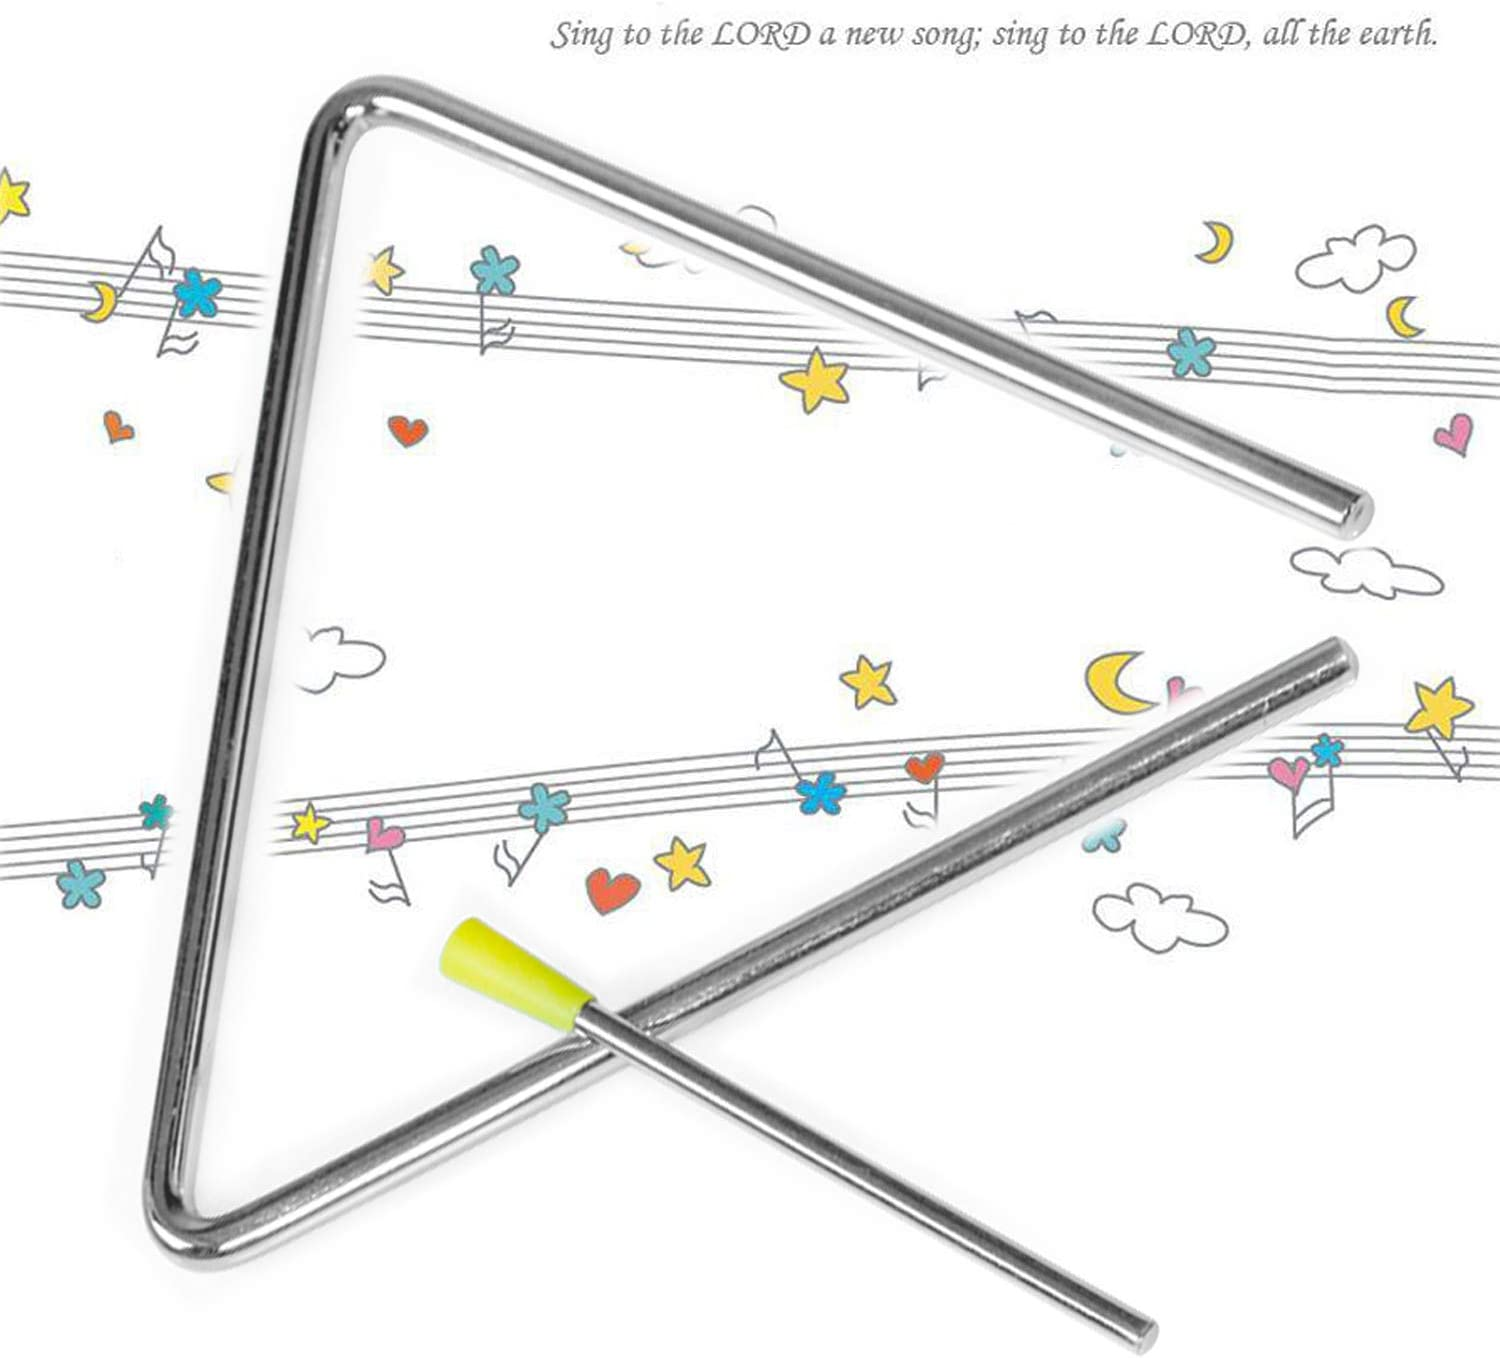 YCDTMY Childrens Musical Toy Orff Instrument Percussion Triangle 4.92 in